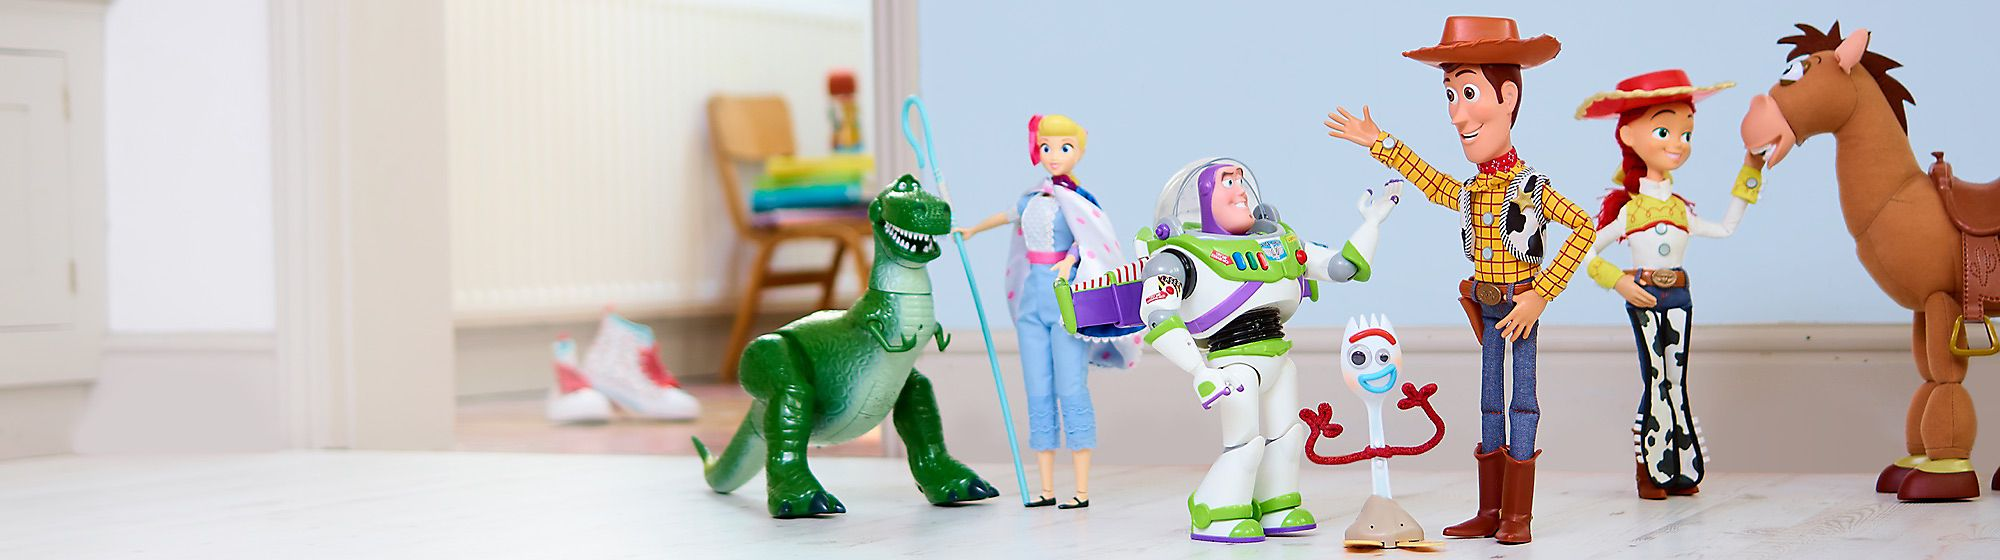 Explore our perfect Pixar range featuring toys, clothes and much more. Just keep shopping, just keep shopping...